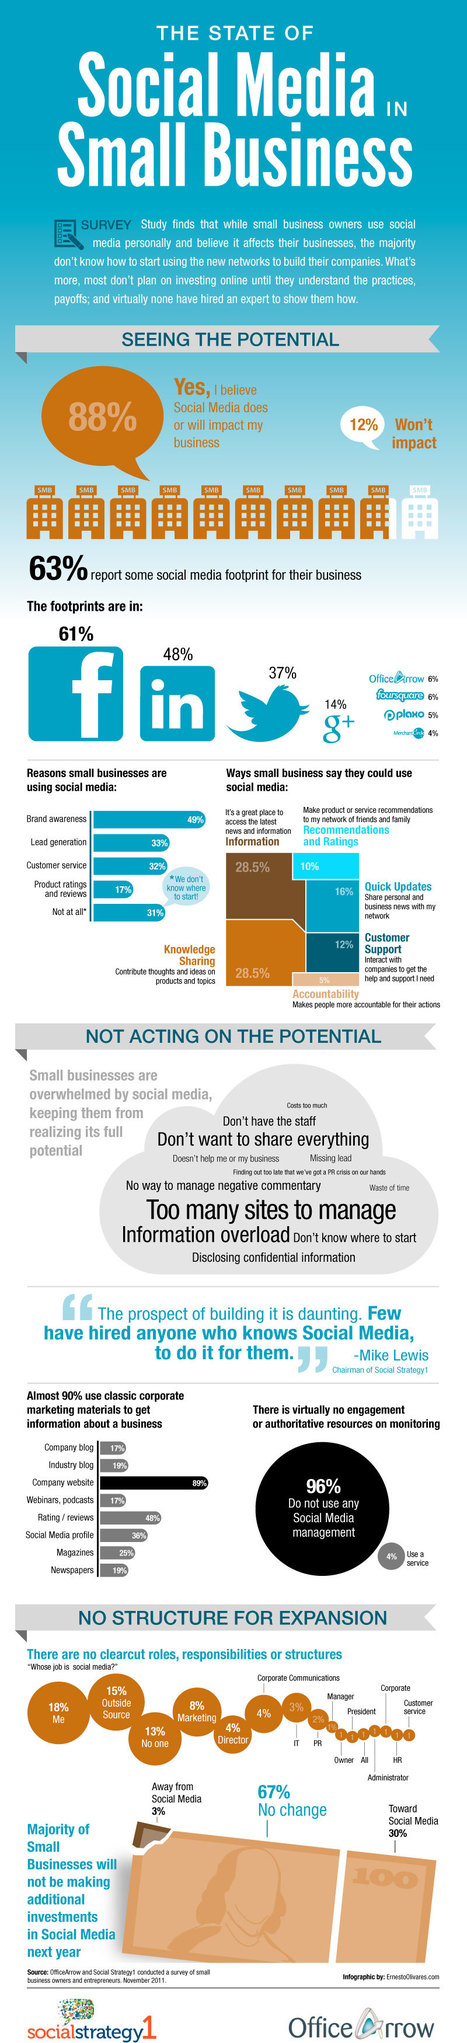 Study Finds 67% of Small Businesses Won't Invest in Social Media in 2012 But Why? -  @simplyzesty | Eduployment | Scoop.it